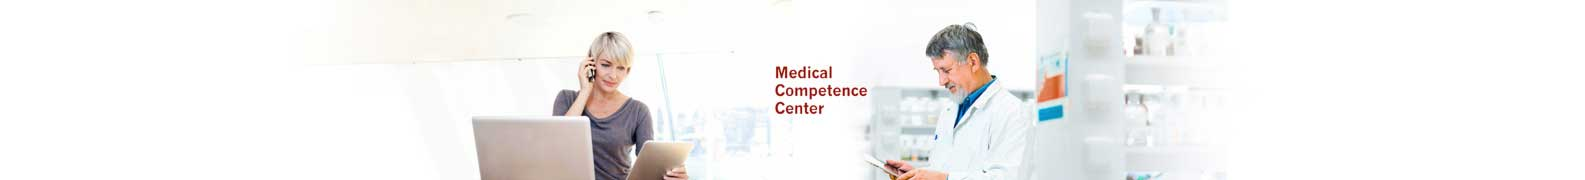 Medical Competence Center - Klinische Forschung Novartis